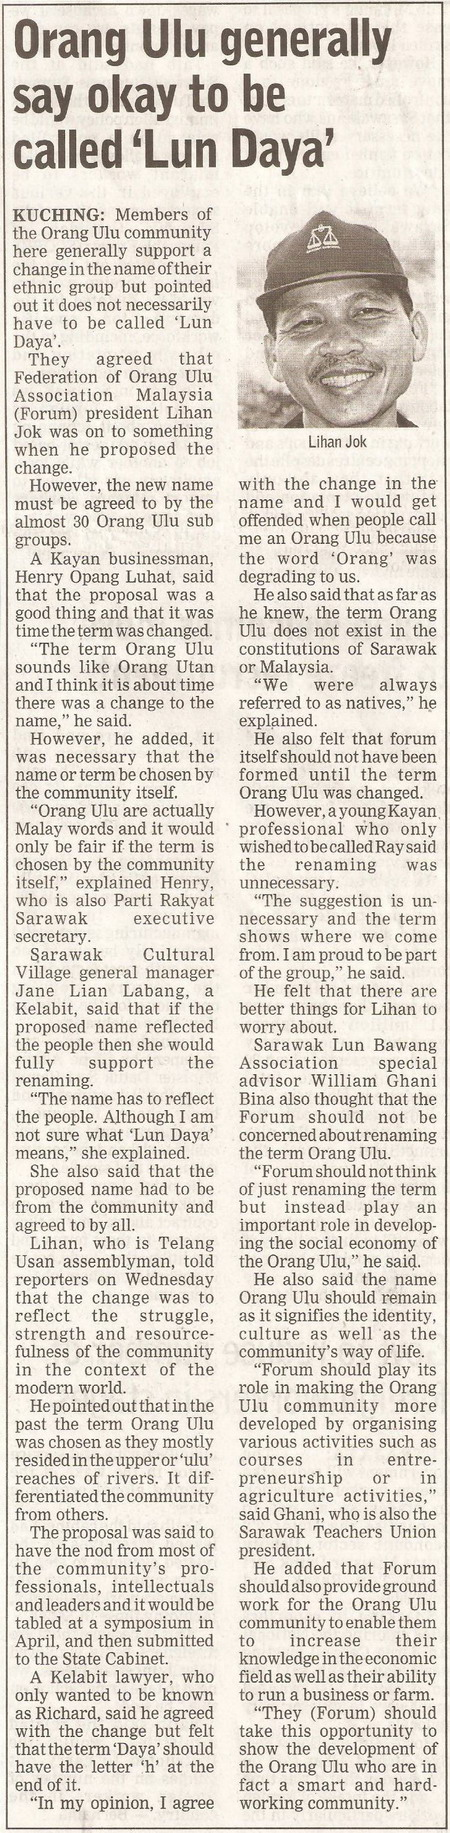 Borneo Post. 2009. Orang Ulu generally say OK to be called 'Lun Daya'. January 23, 2009 Edition.